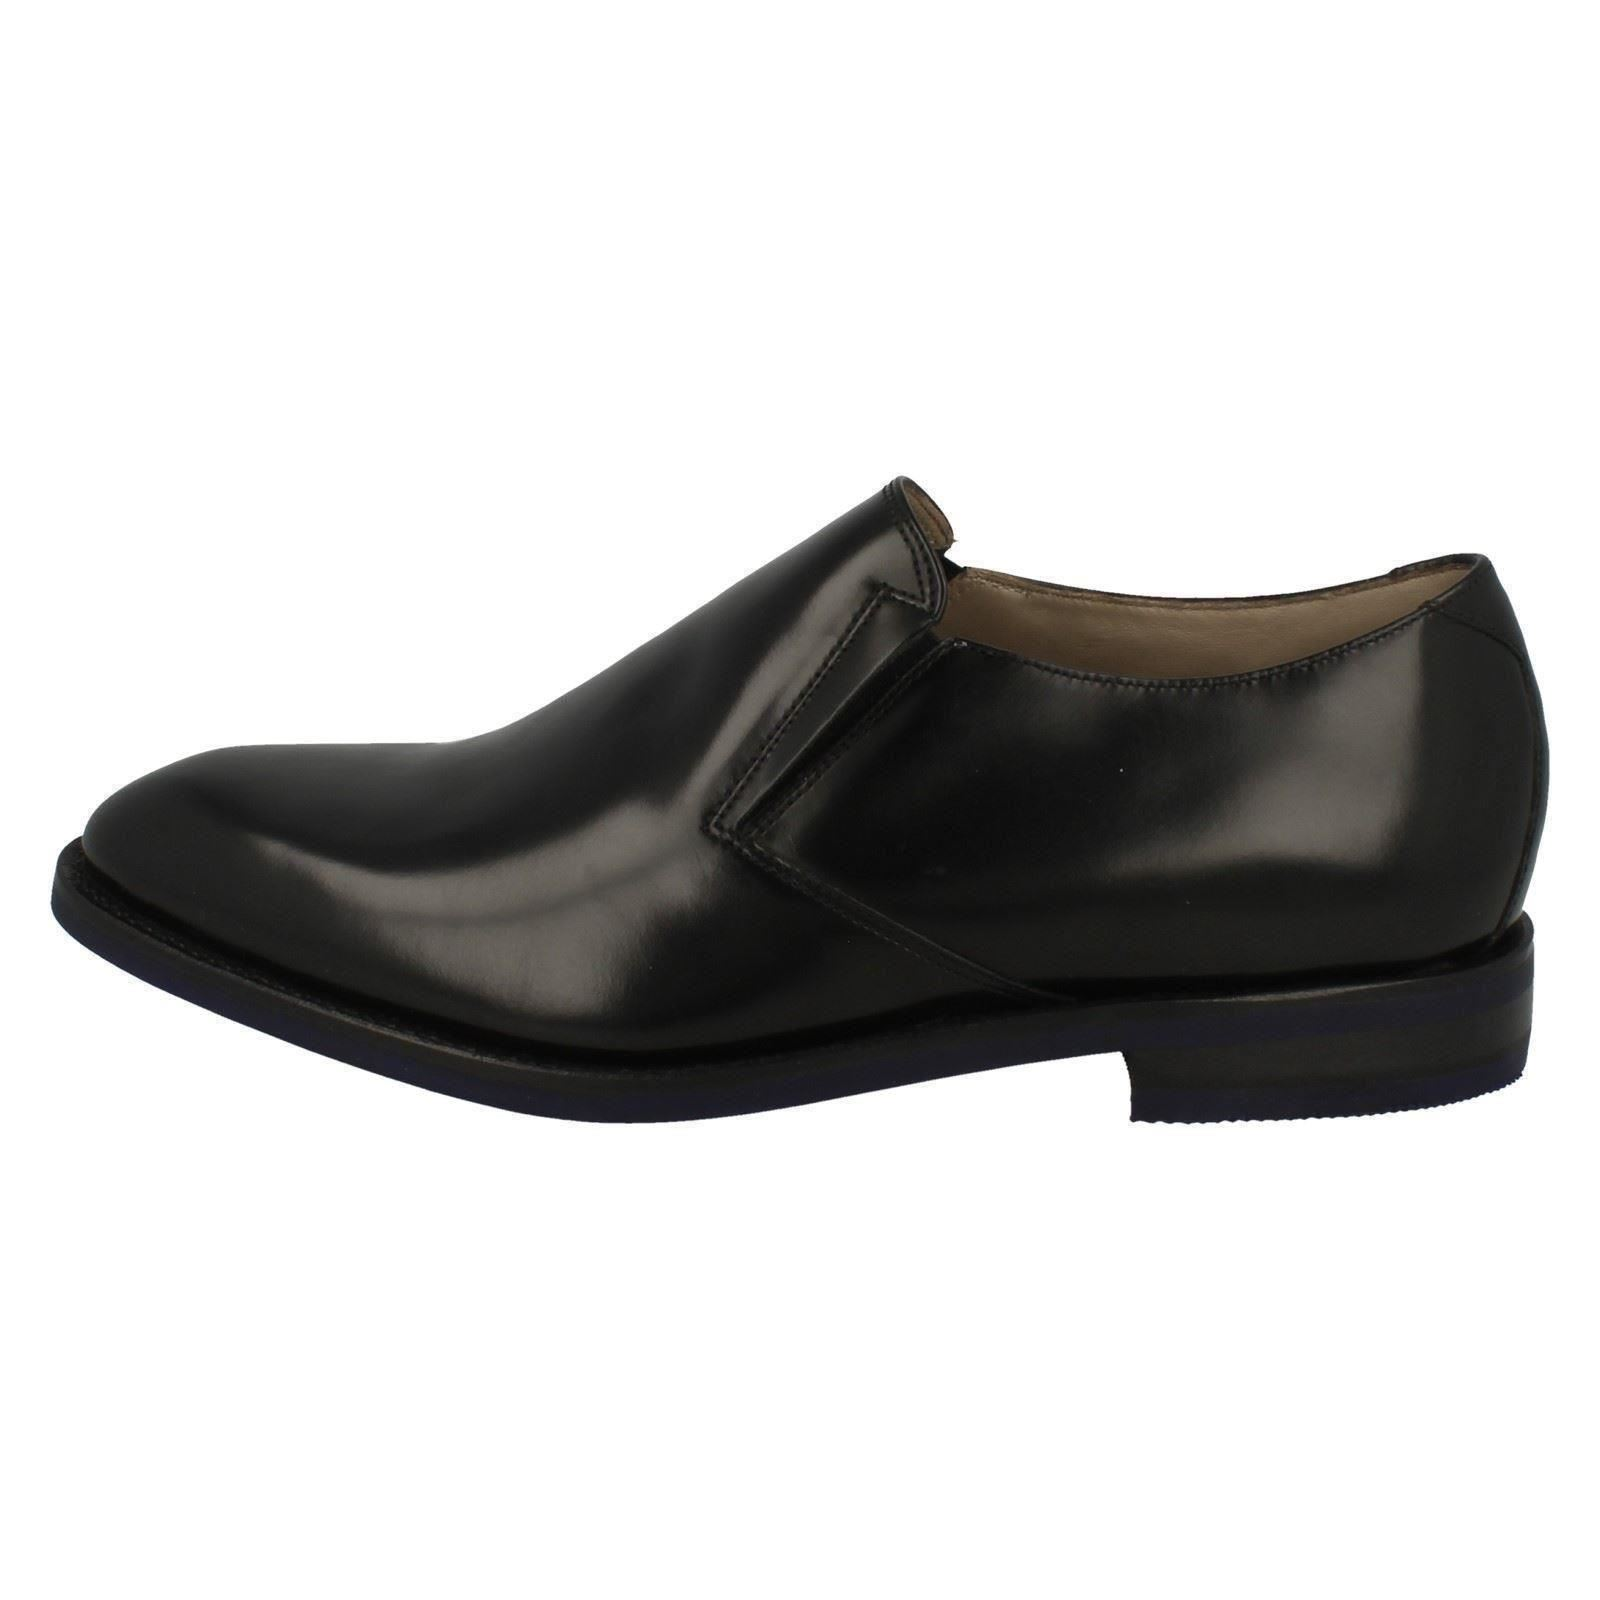 Clarks Uomo Clarks  Formal Schuhes 'Swinley Step' a6cd21